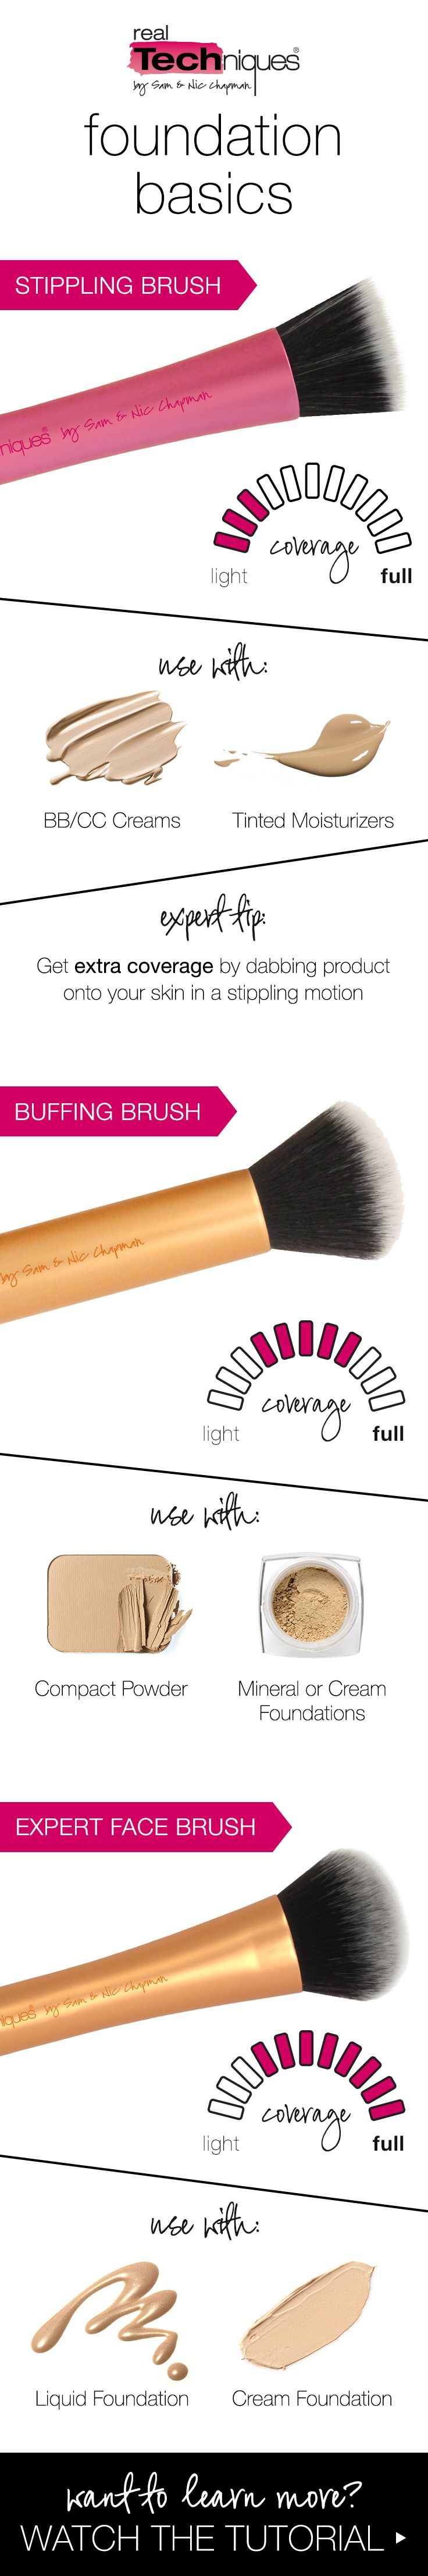 Pinterest: Jocy ♡ Deason - real techniques foundation brush overview - stippling, buffing & expert face brush tips